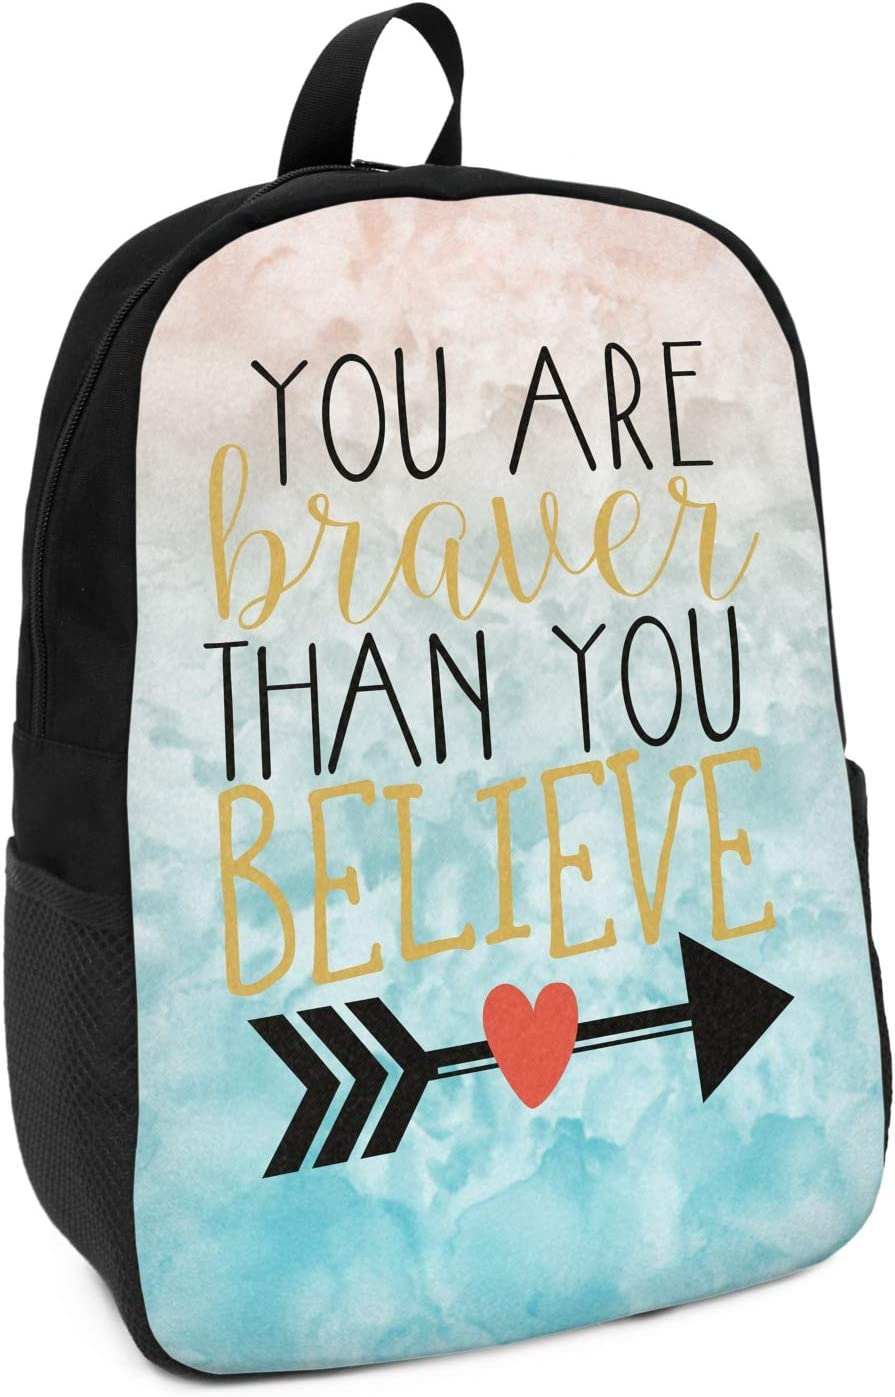 Inspirational Quotes Kids Backpack Personalized